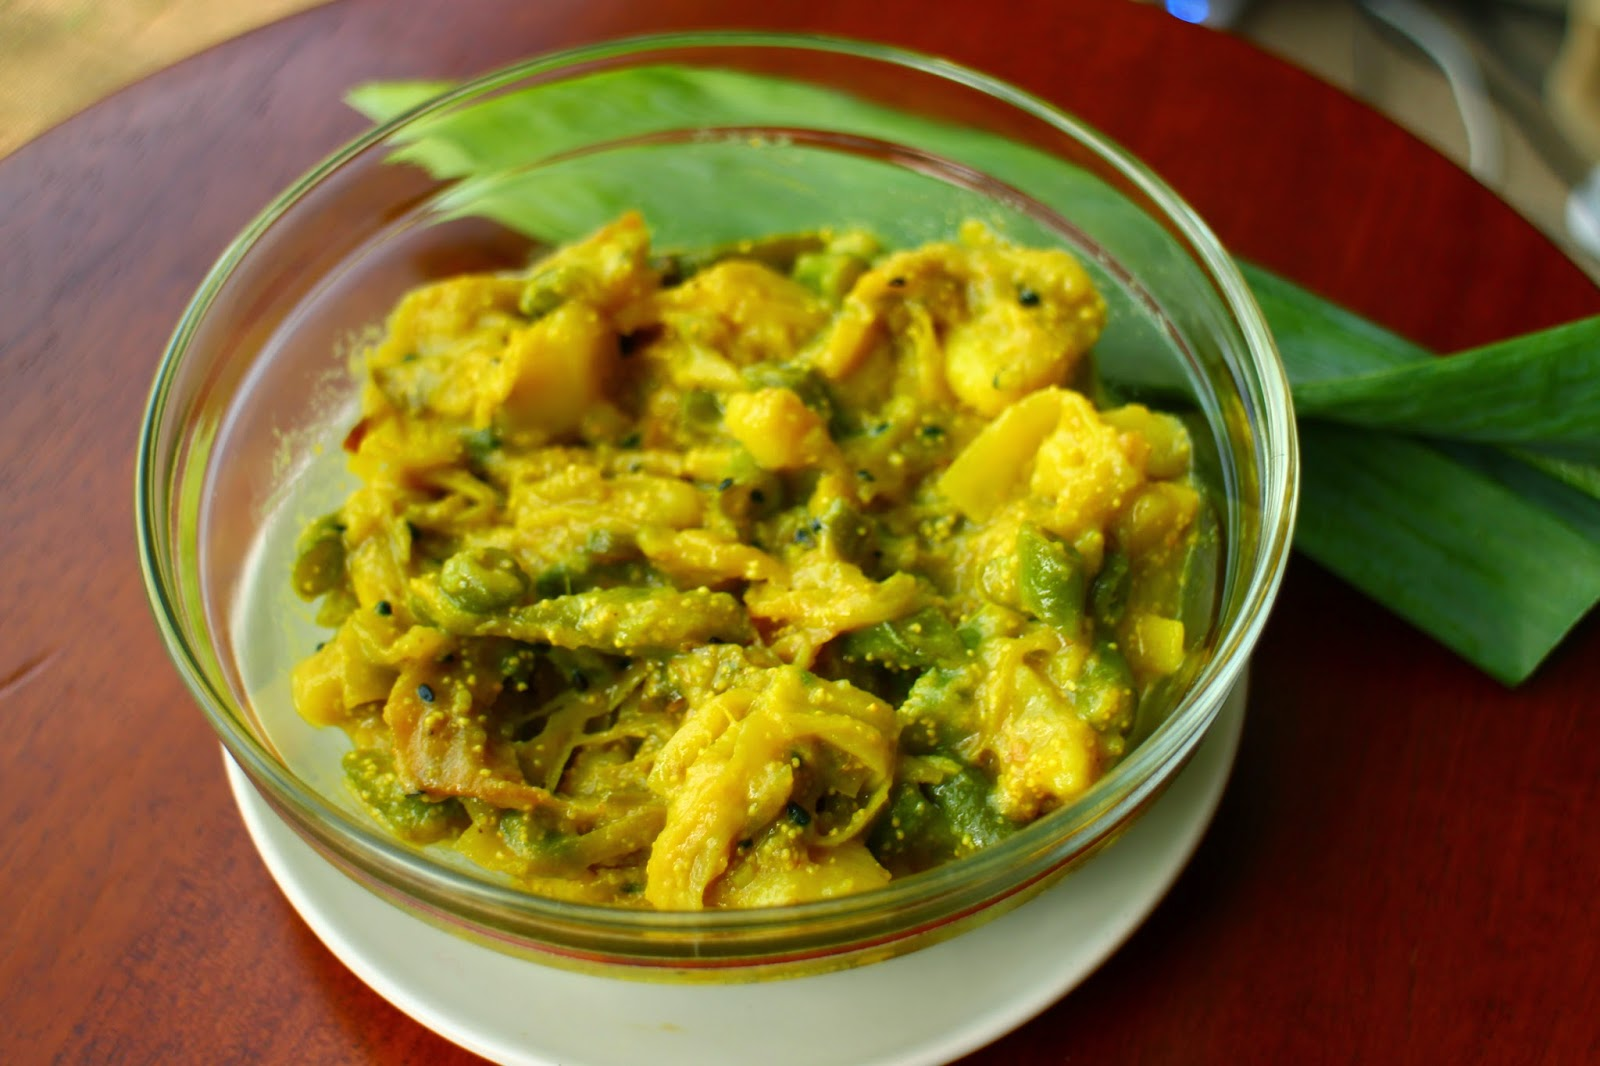 Indian food recipes indian recipes desi food desi recipes indian food recipes indian recipes desi food desi recipes south indian recipes north indian recipes itspotluck forumfinder Choice Image